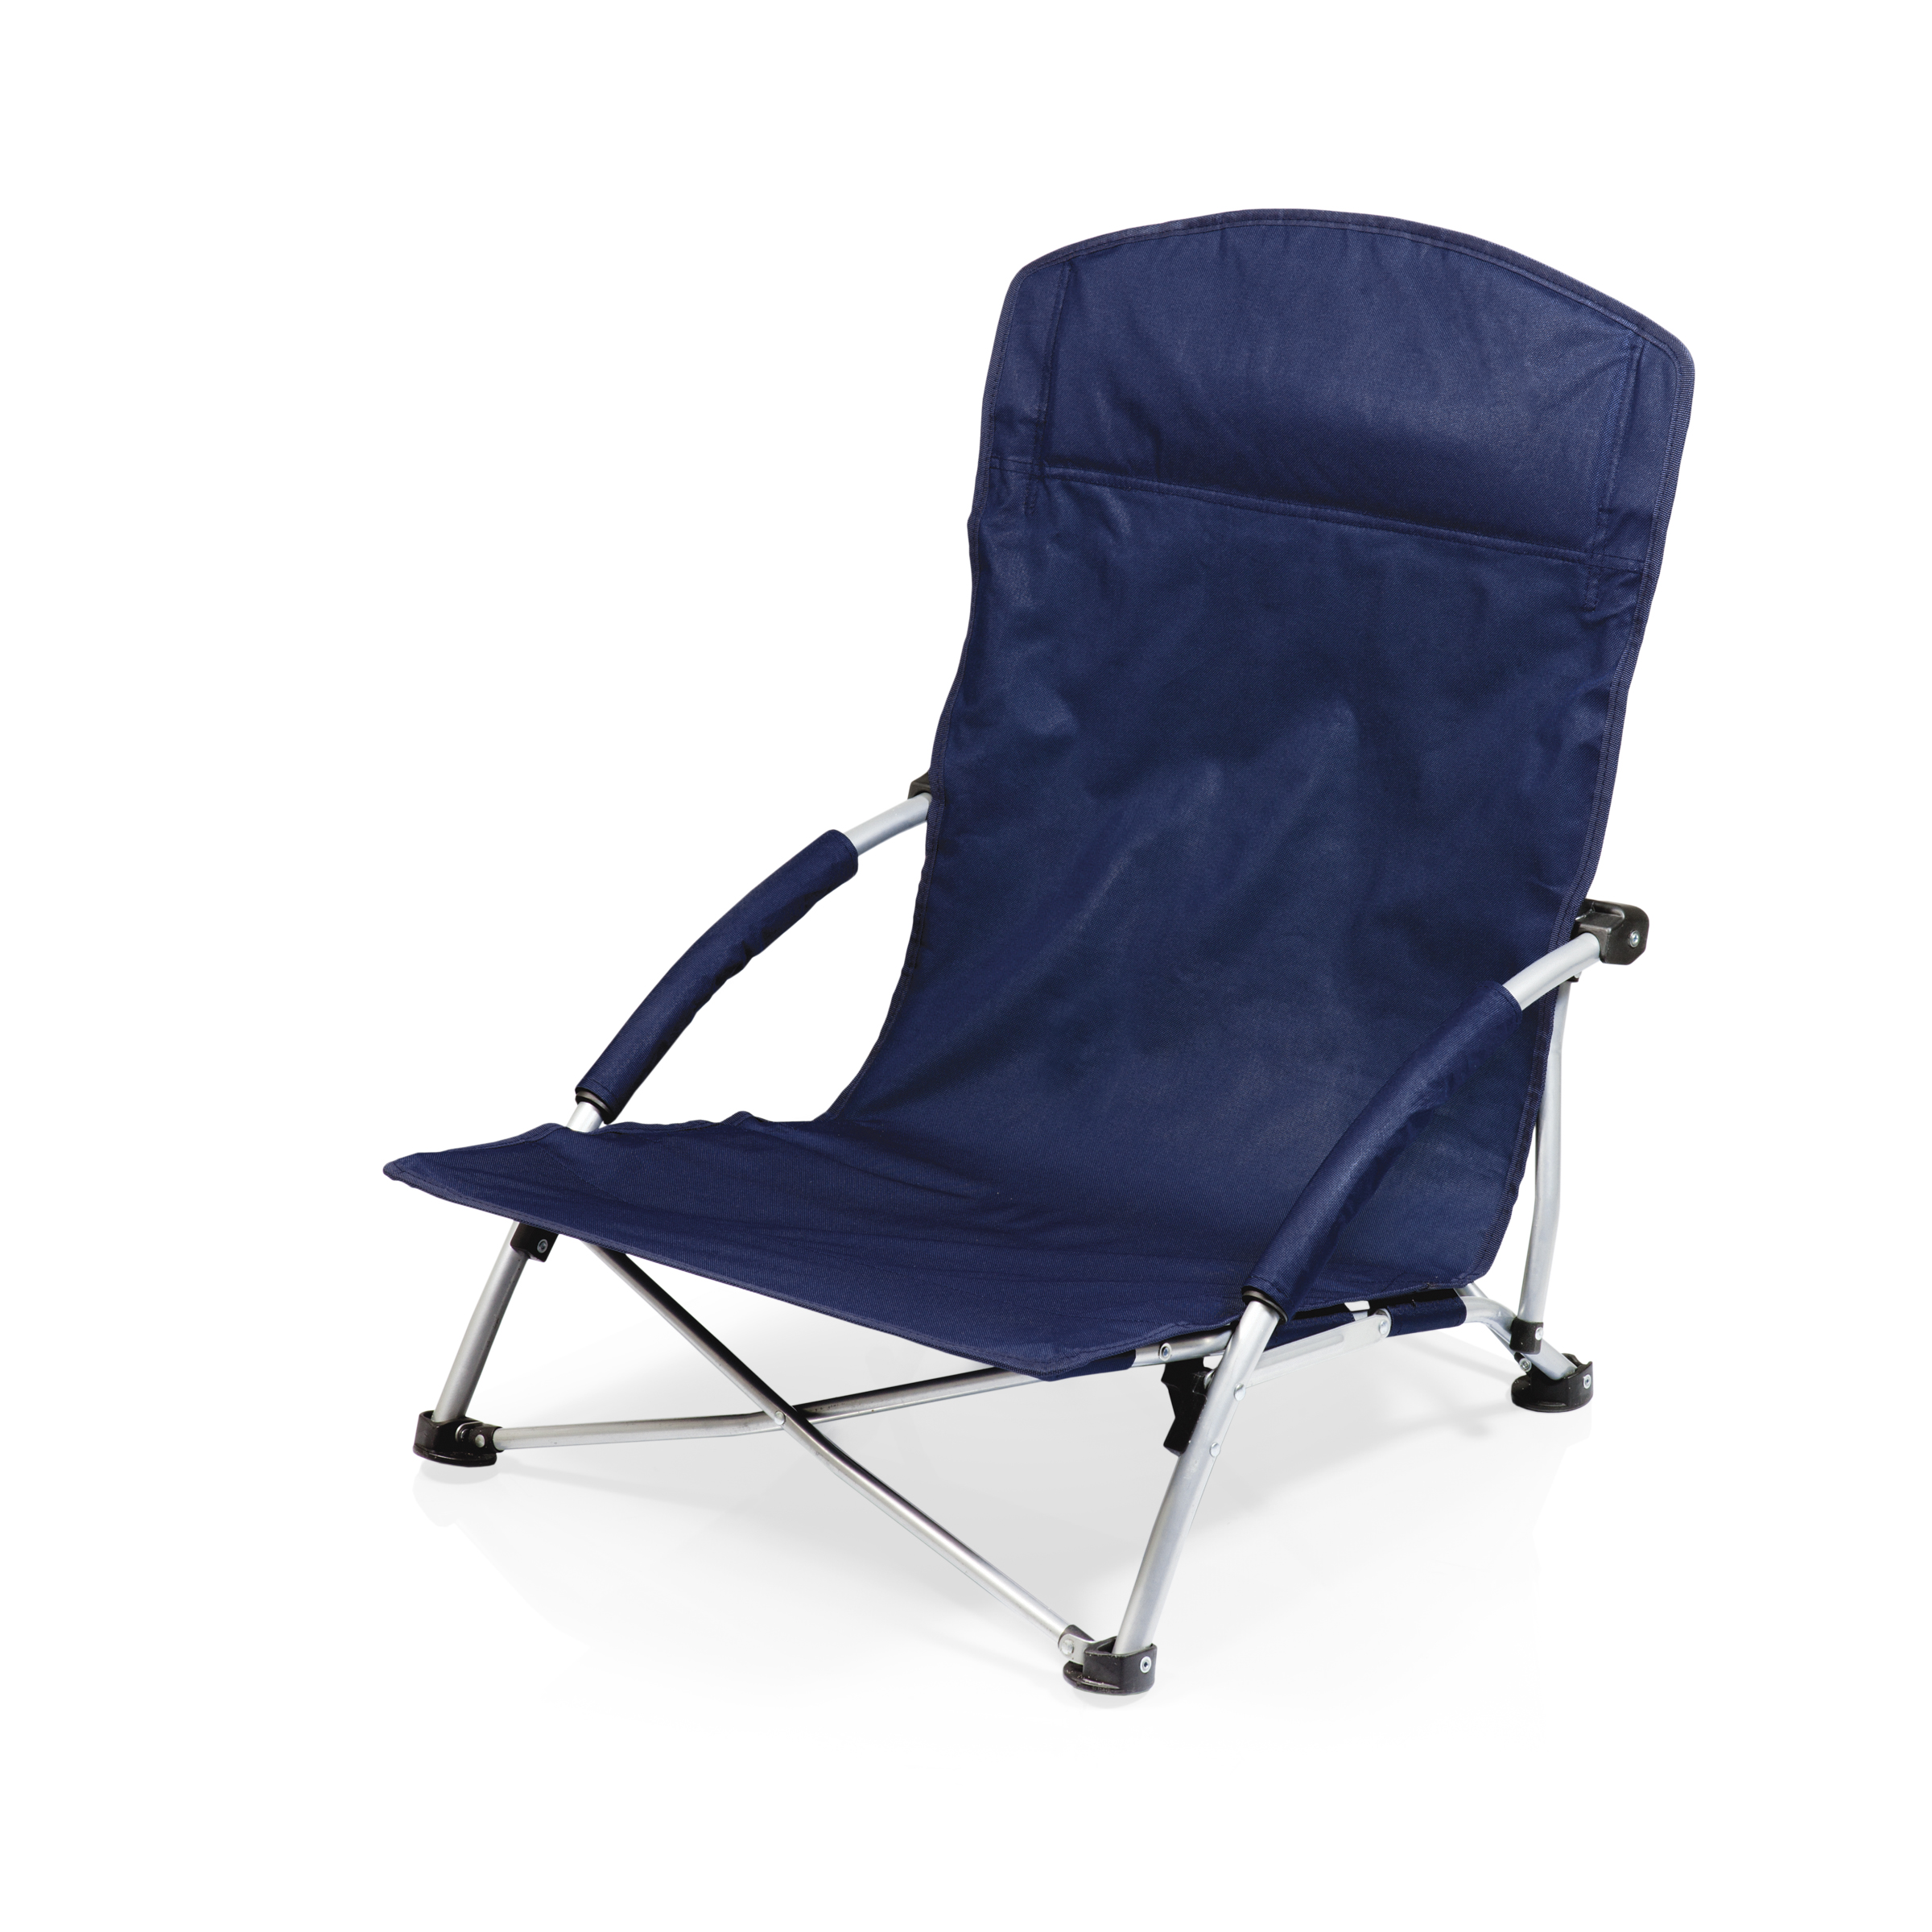 Portable Beach Chairs Tranquility Chair Picnic Time Family Of Brands